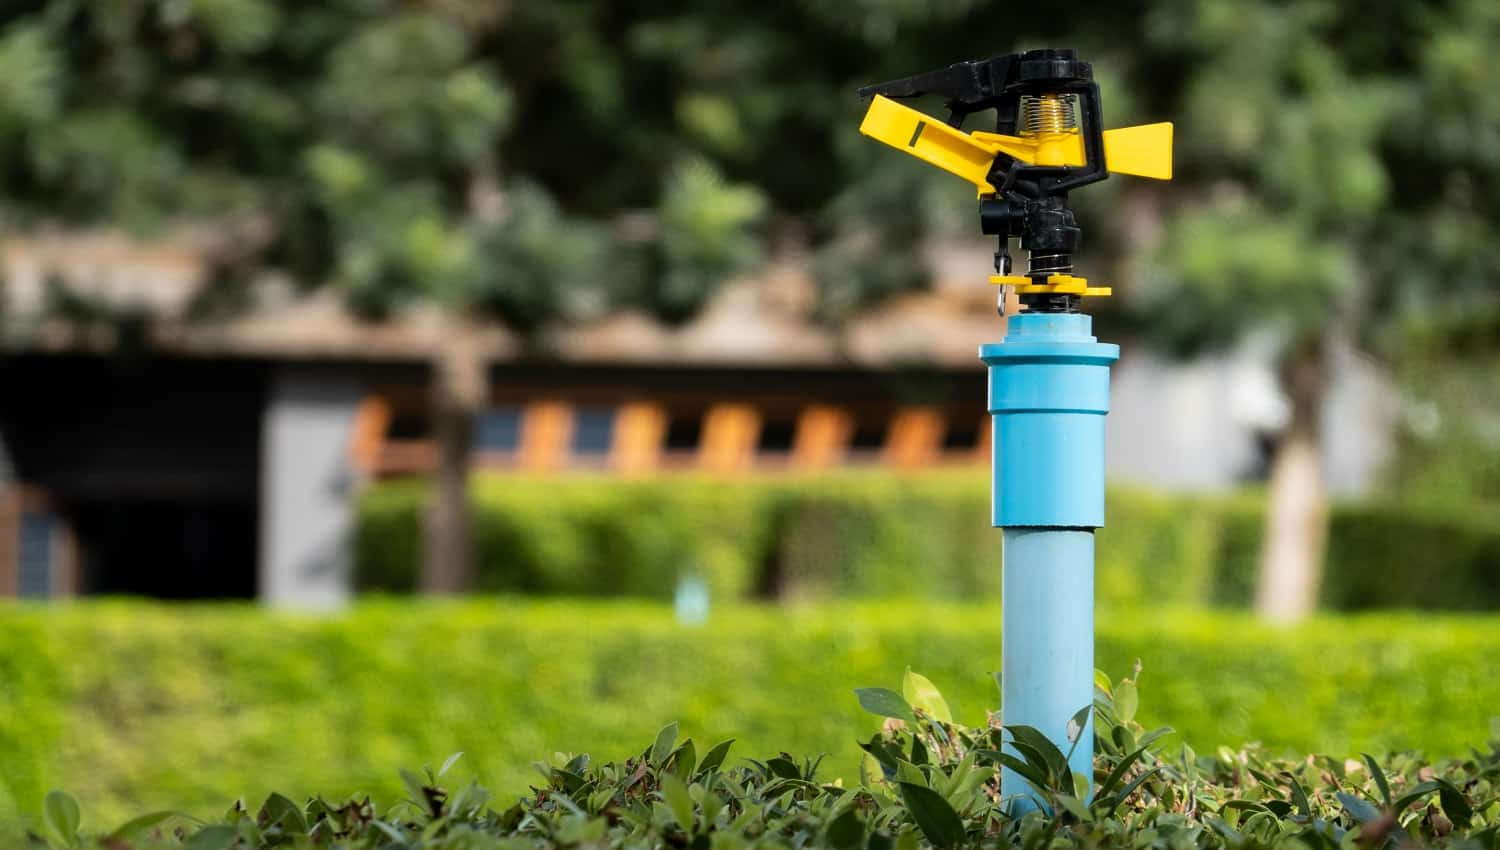 water pipe springer in garden, Agricultural farm, watering plants.